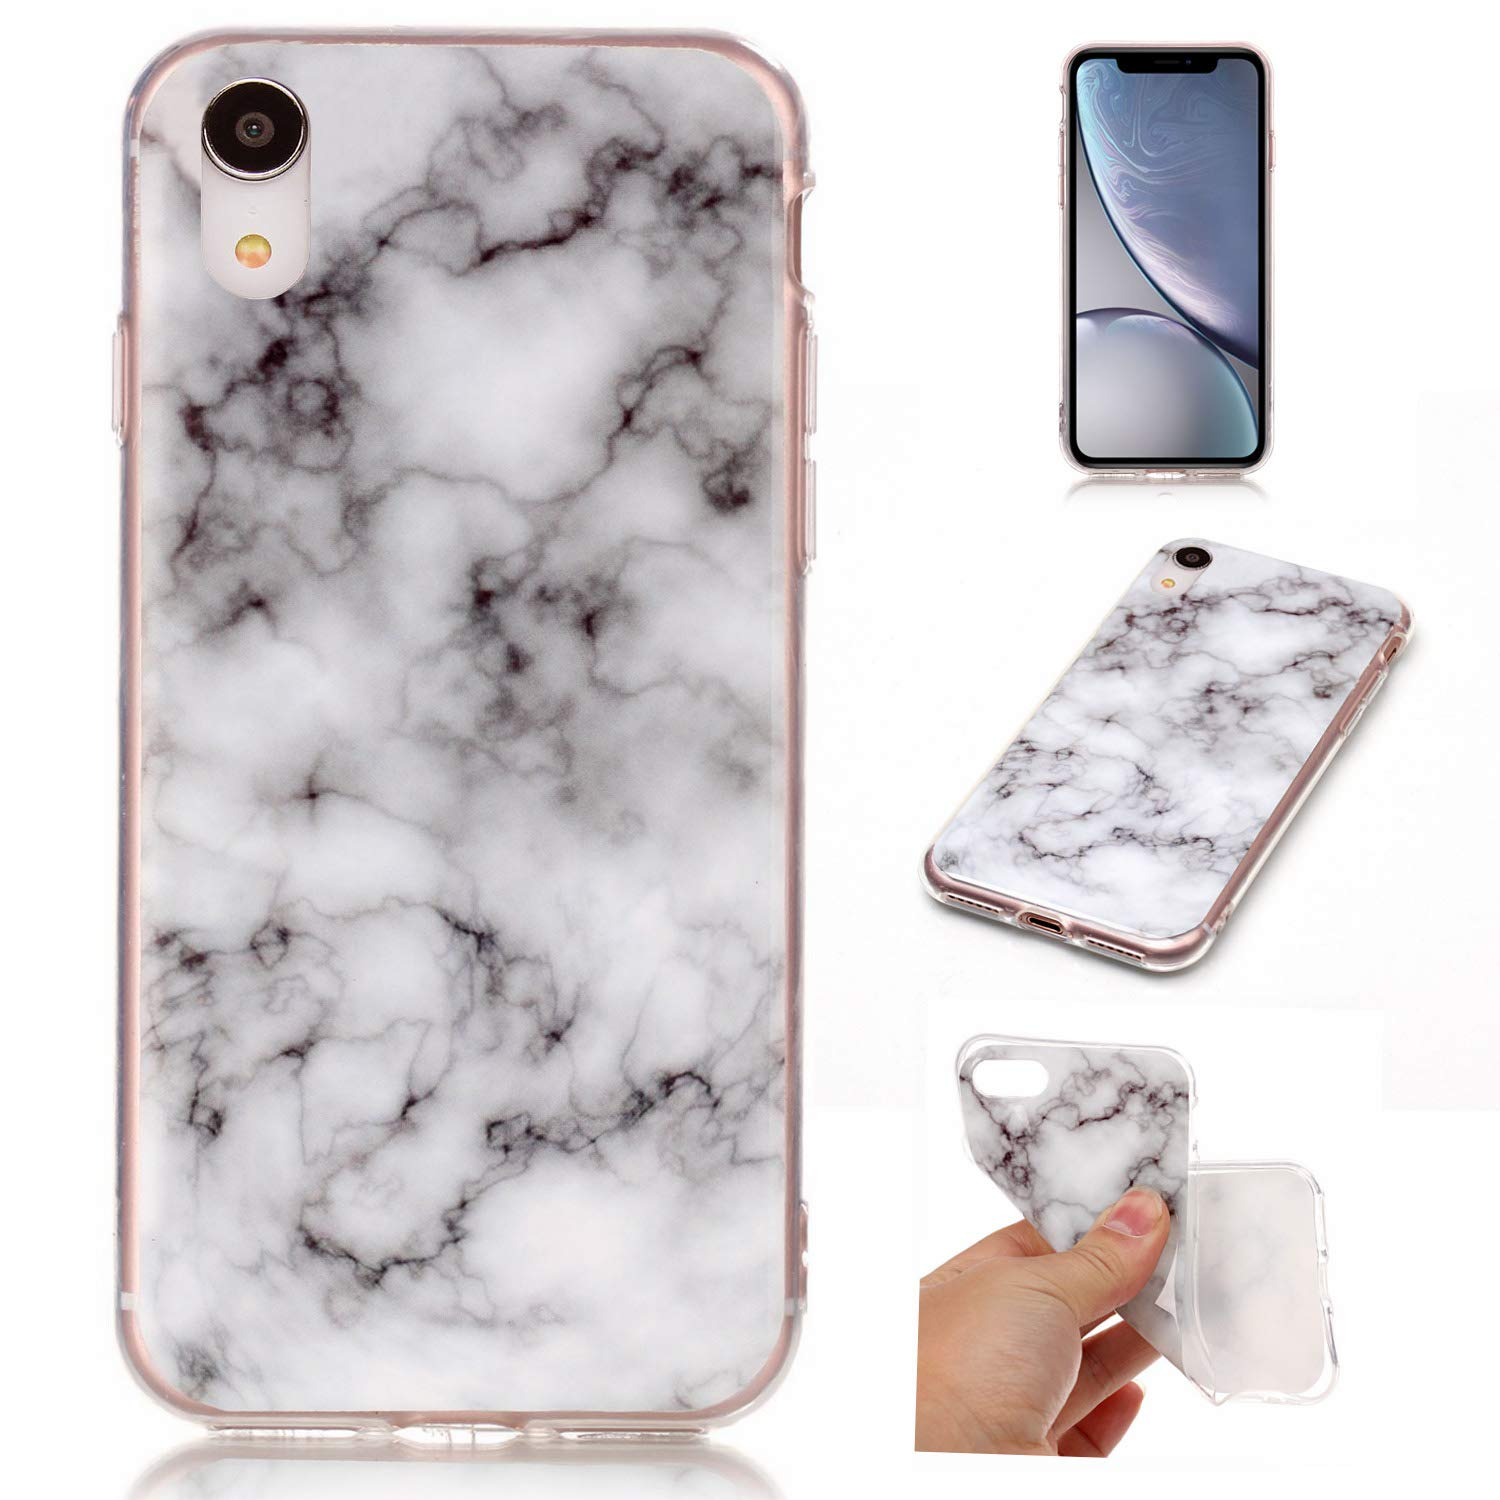 Dailylux iPhone XR Case, Pattern Slim-Fit TPU Clear Bumper Flexible Rubber Silicone Rugged Thin Anti-Scratch Shock-Proof Protective Phone Case Cover iPhone XR-Flower Black